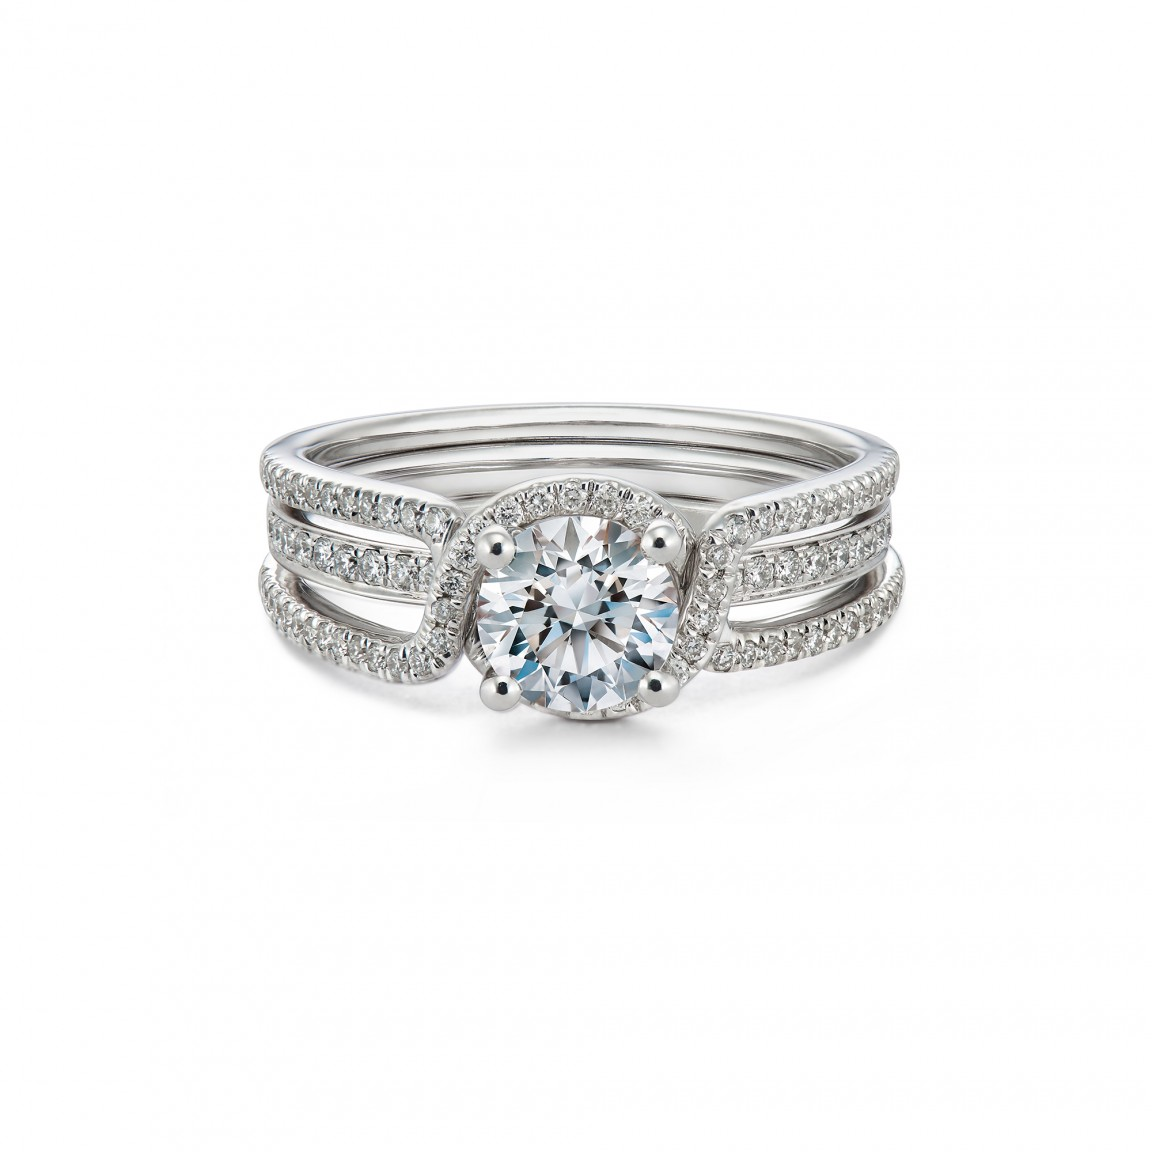 Revel for Forevermark Diamond Ring